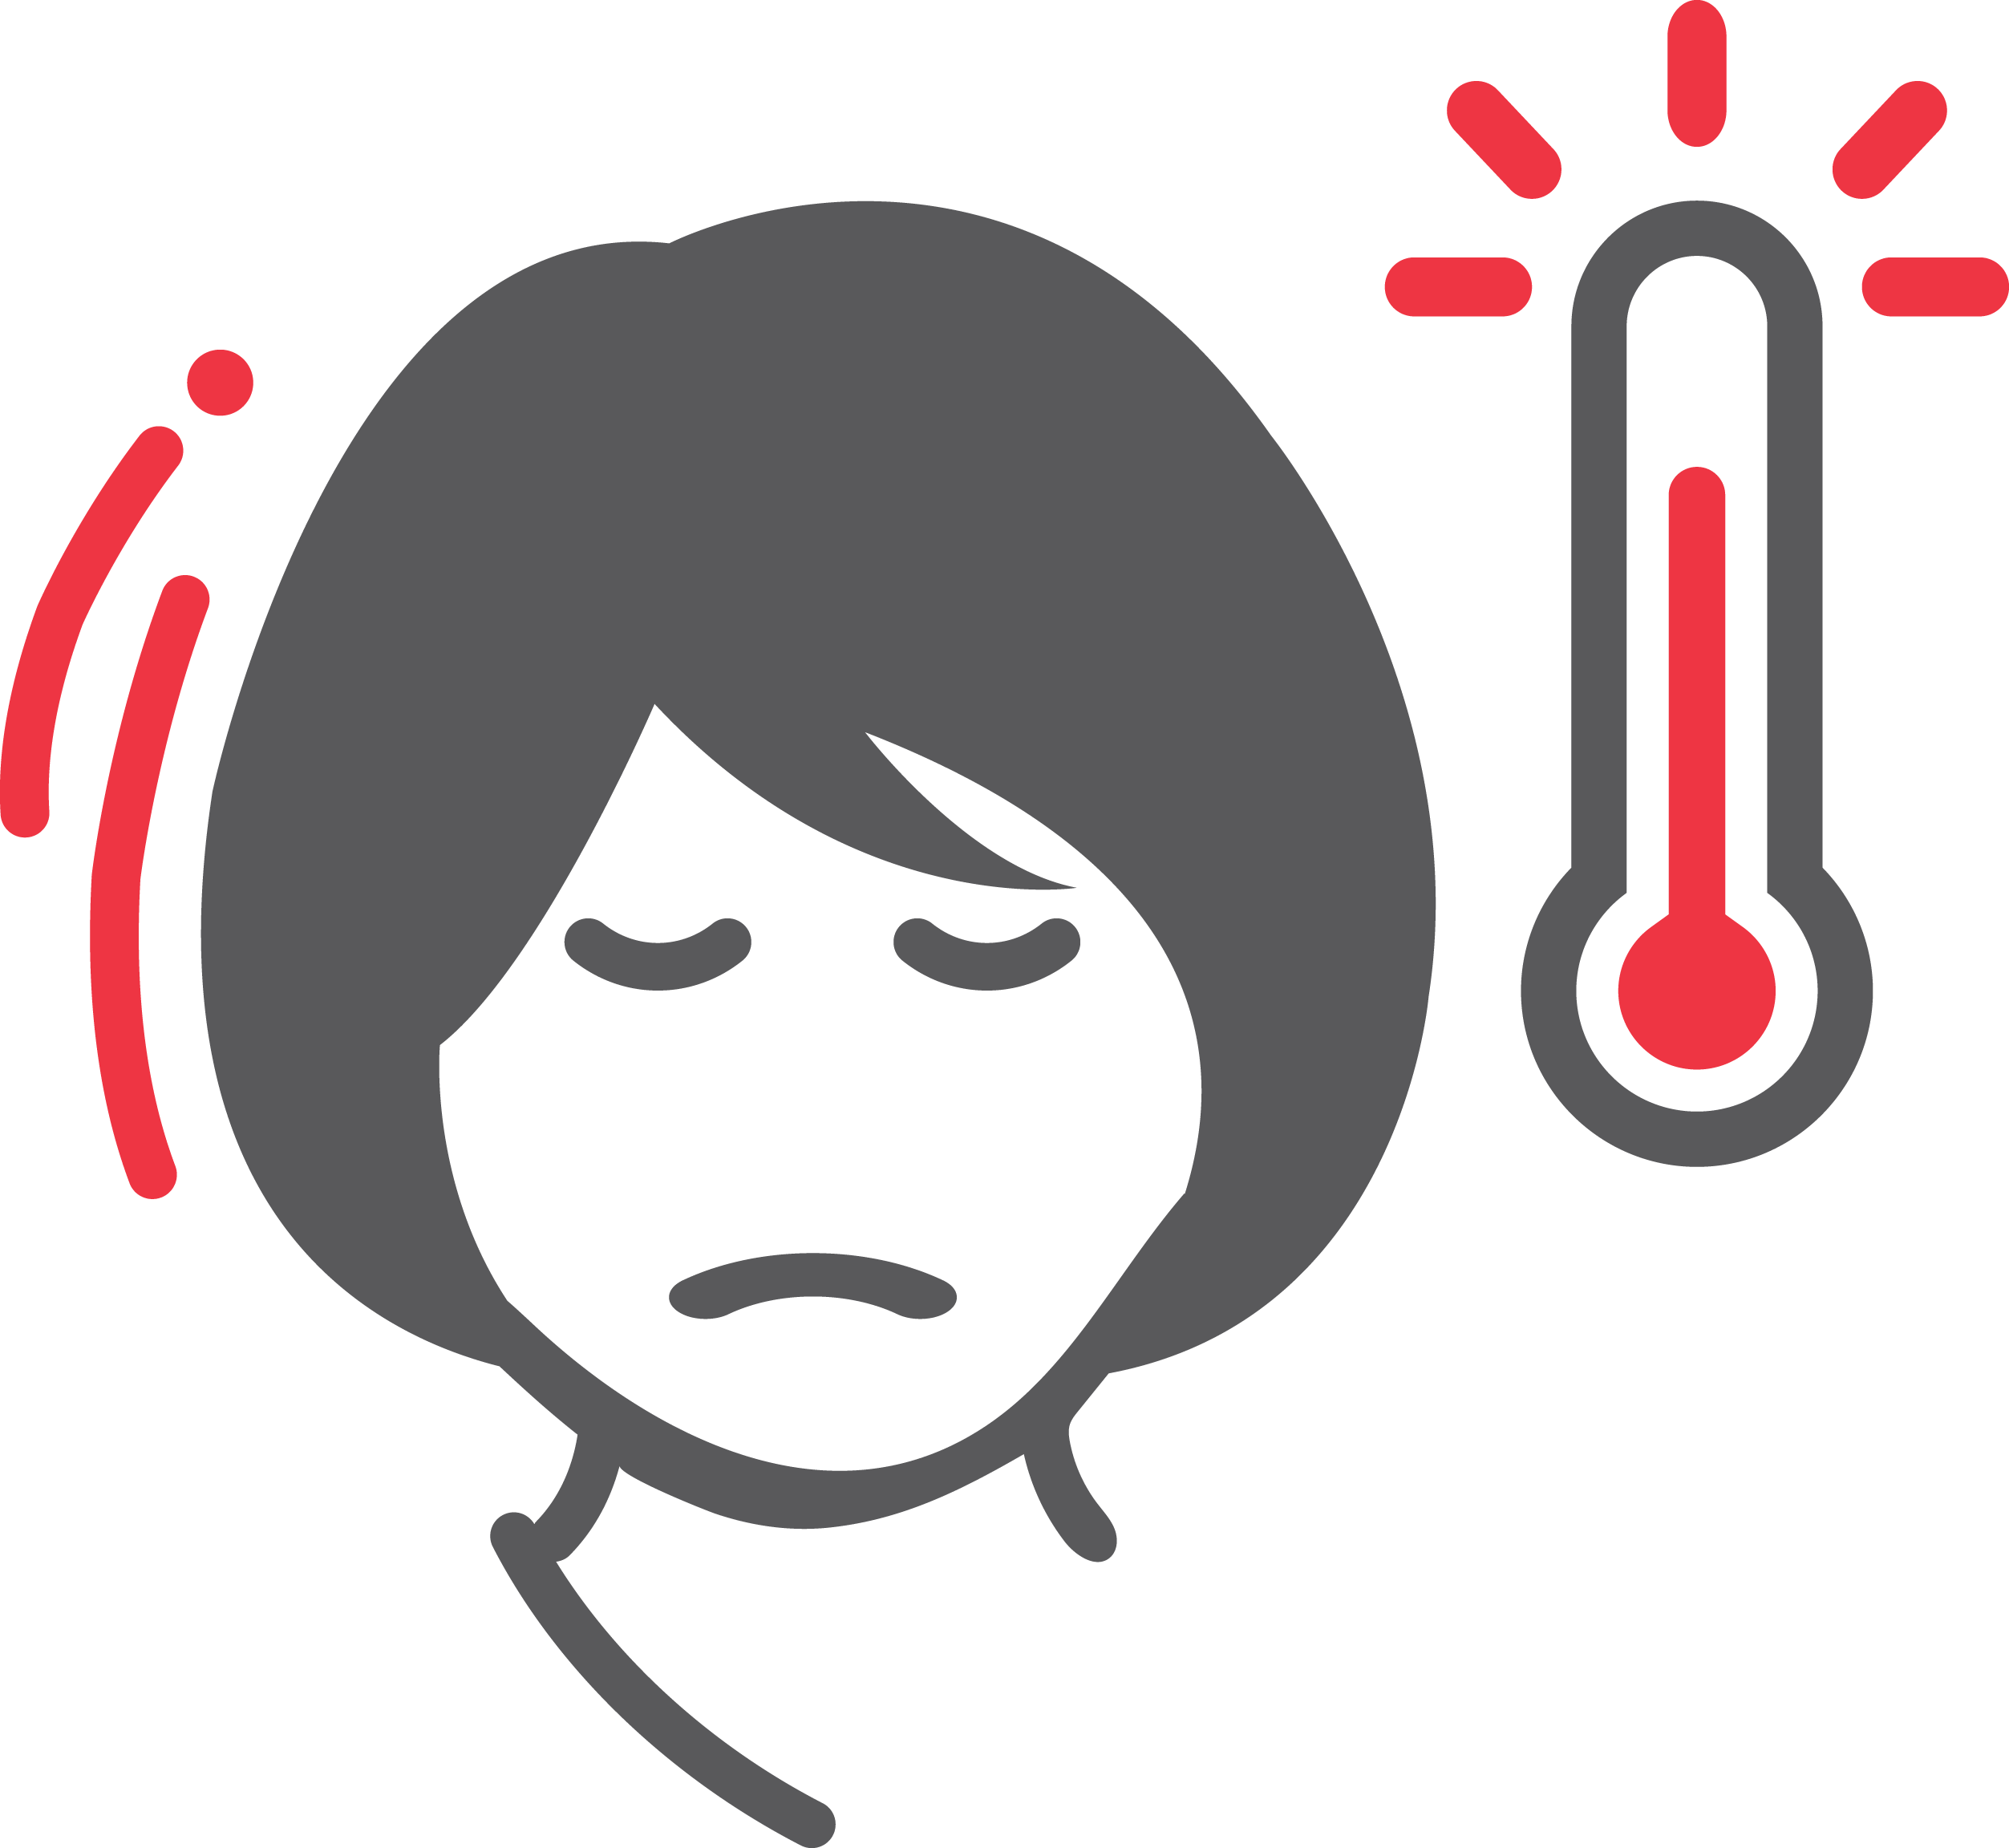 graphic of a woman looking sick with a thermometer next to her face